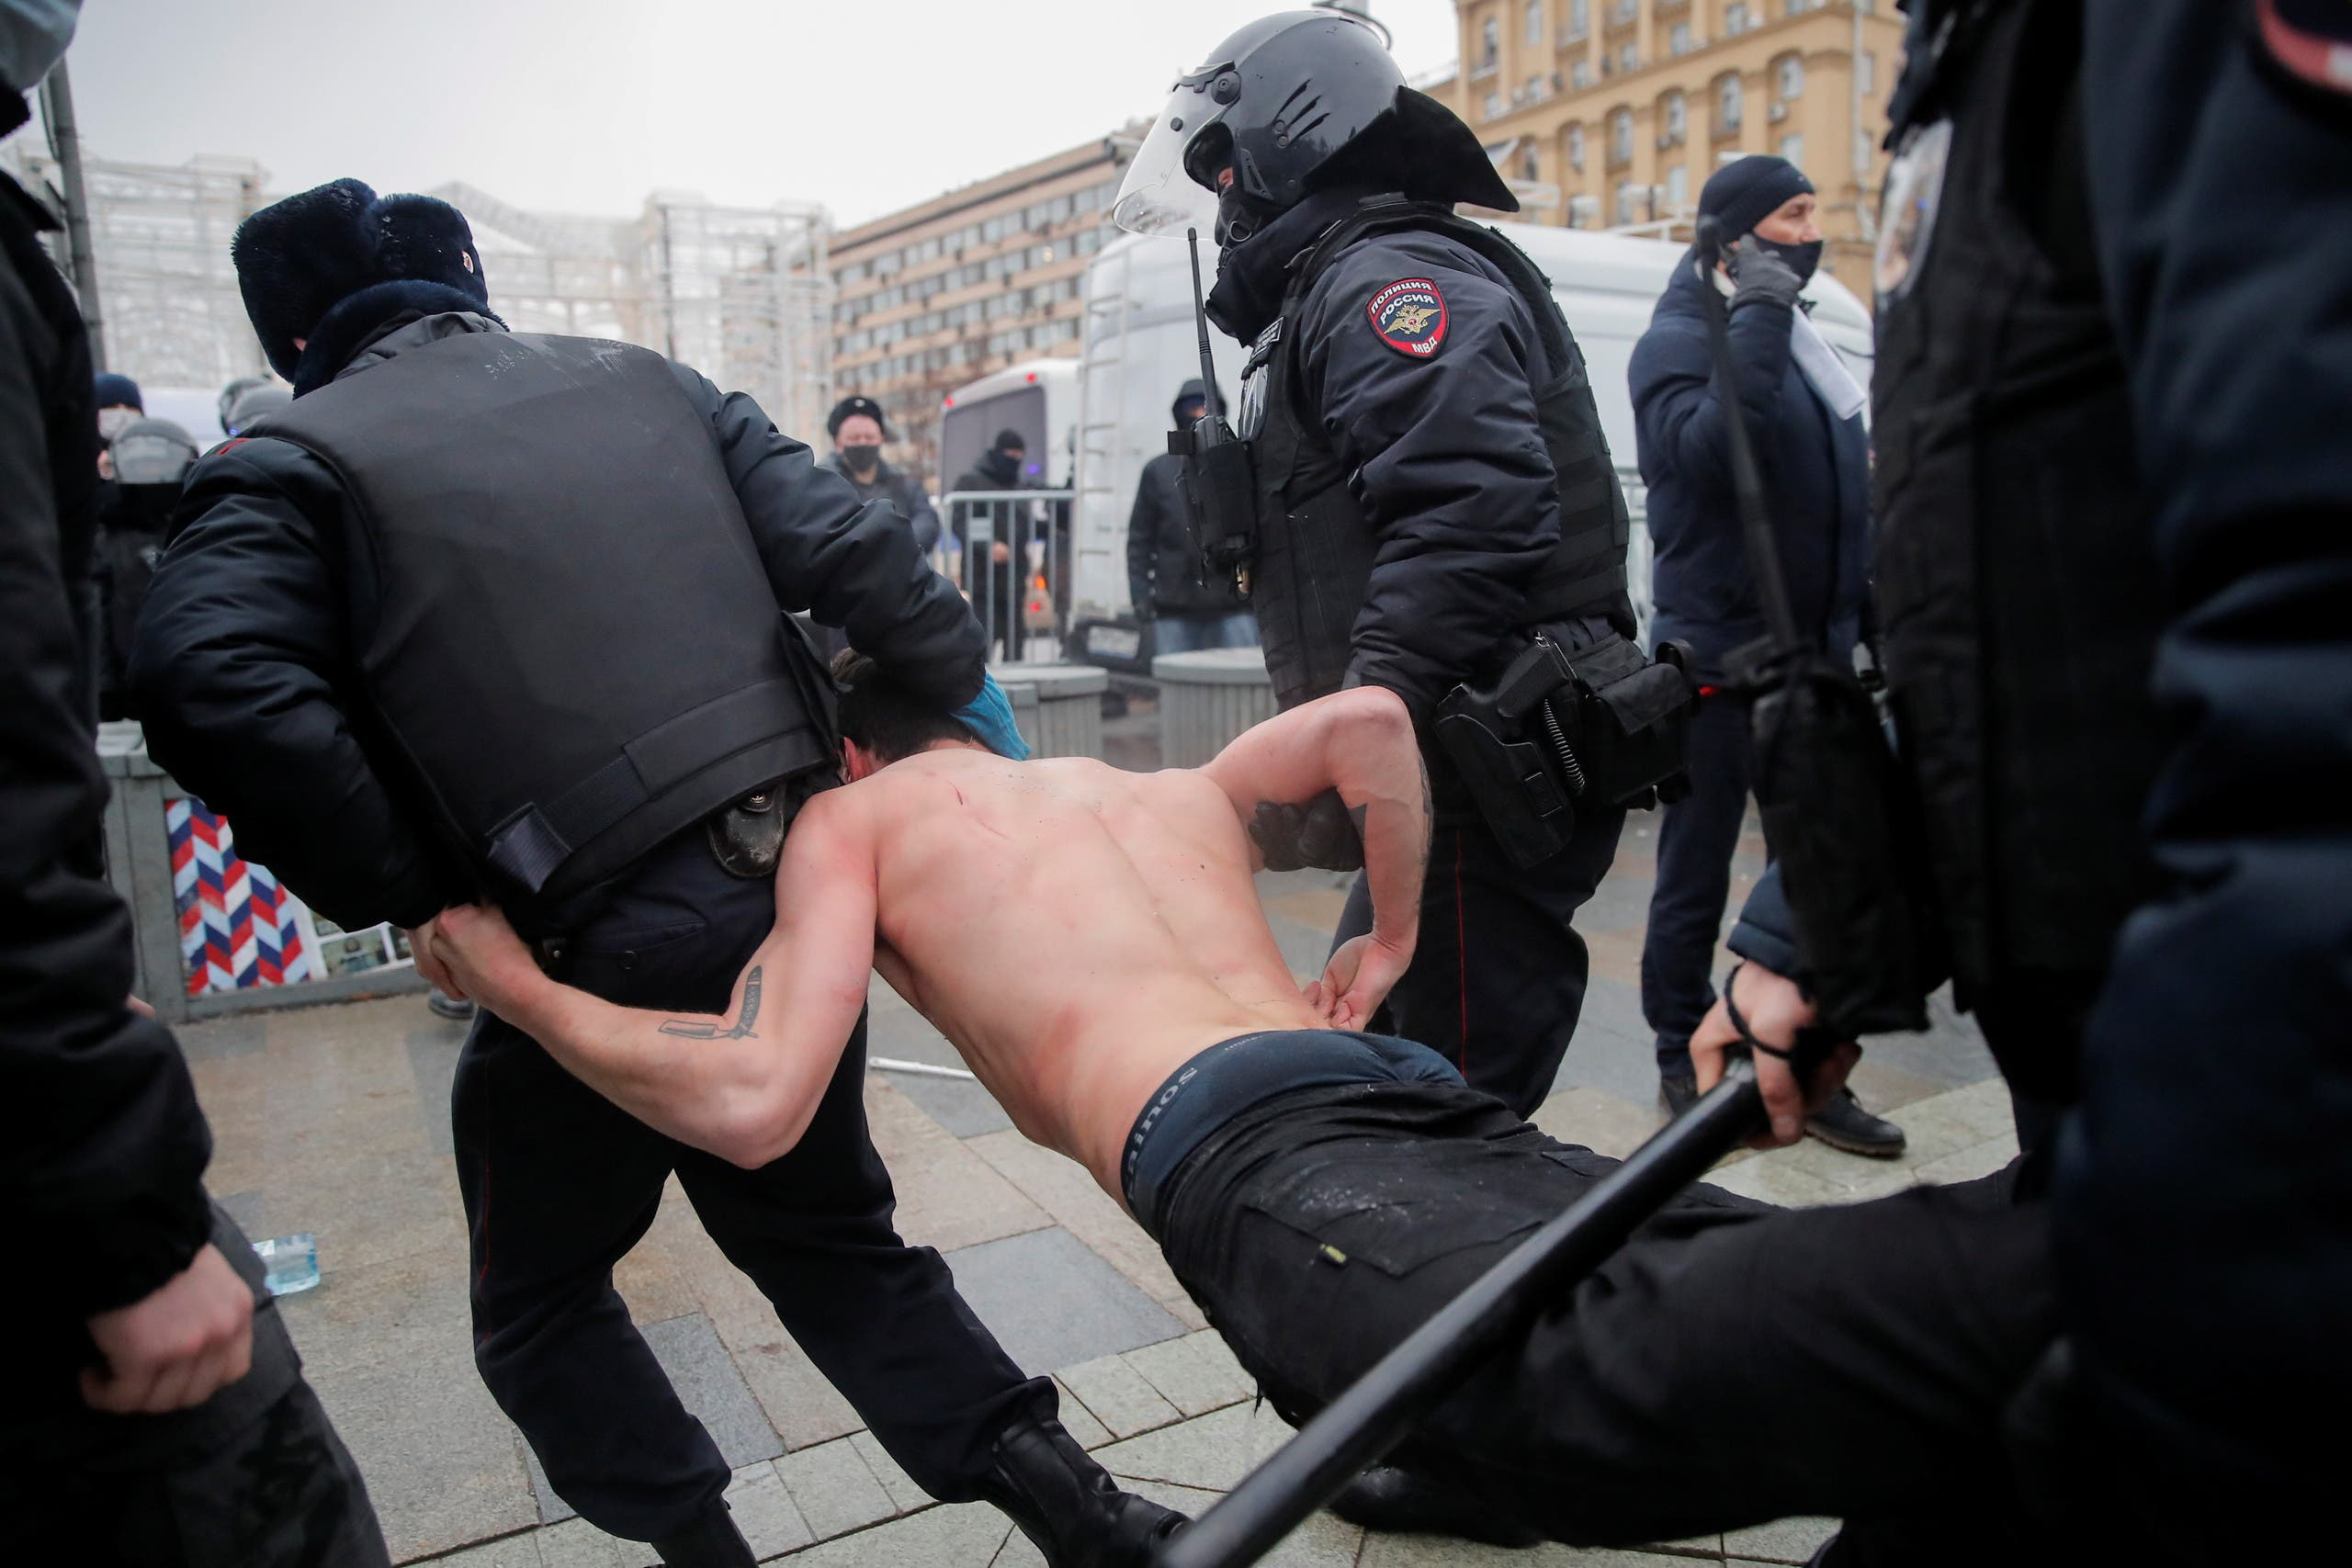 Law enforcement officers detain a man during a rally in support of jailed Russian opposition leader Alexei Navalny in Moscow, Russia January 23, 2021. (Reuters)